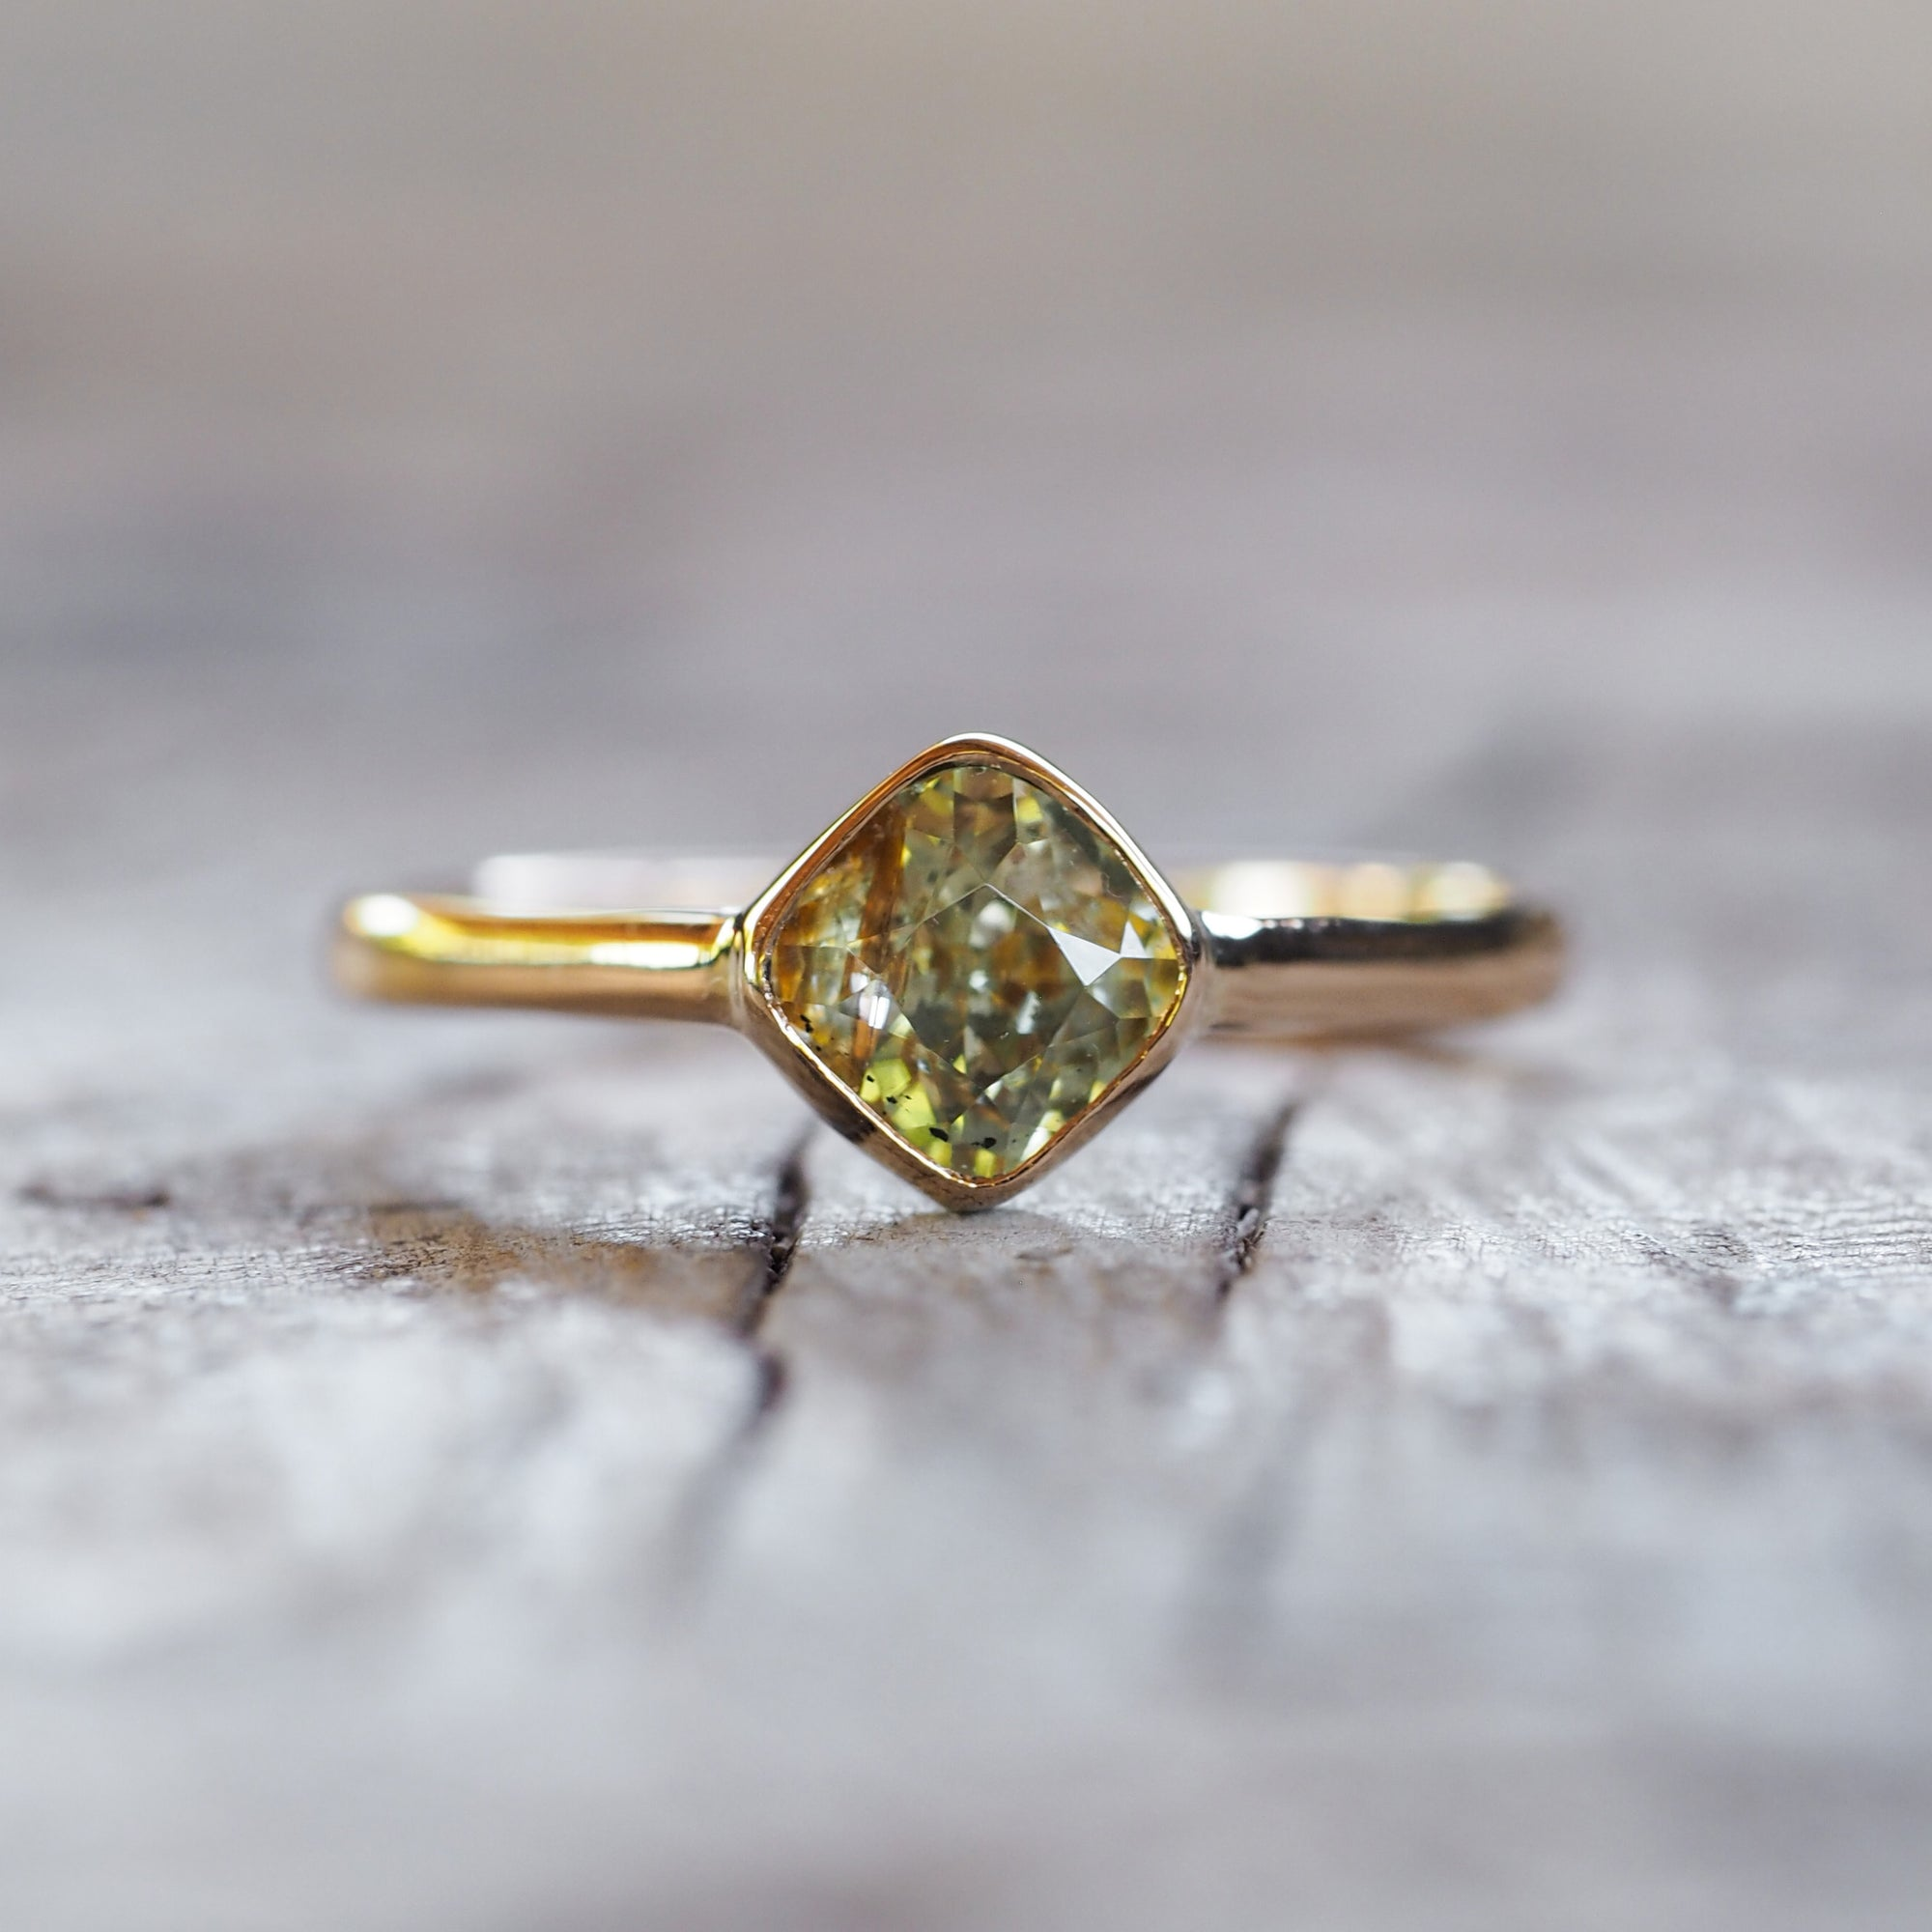 Rutile Golden Sapphire Ring in Gold